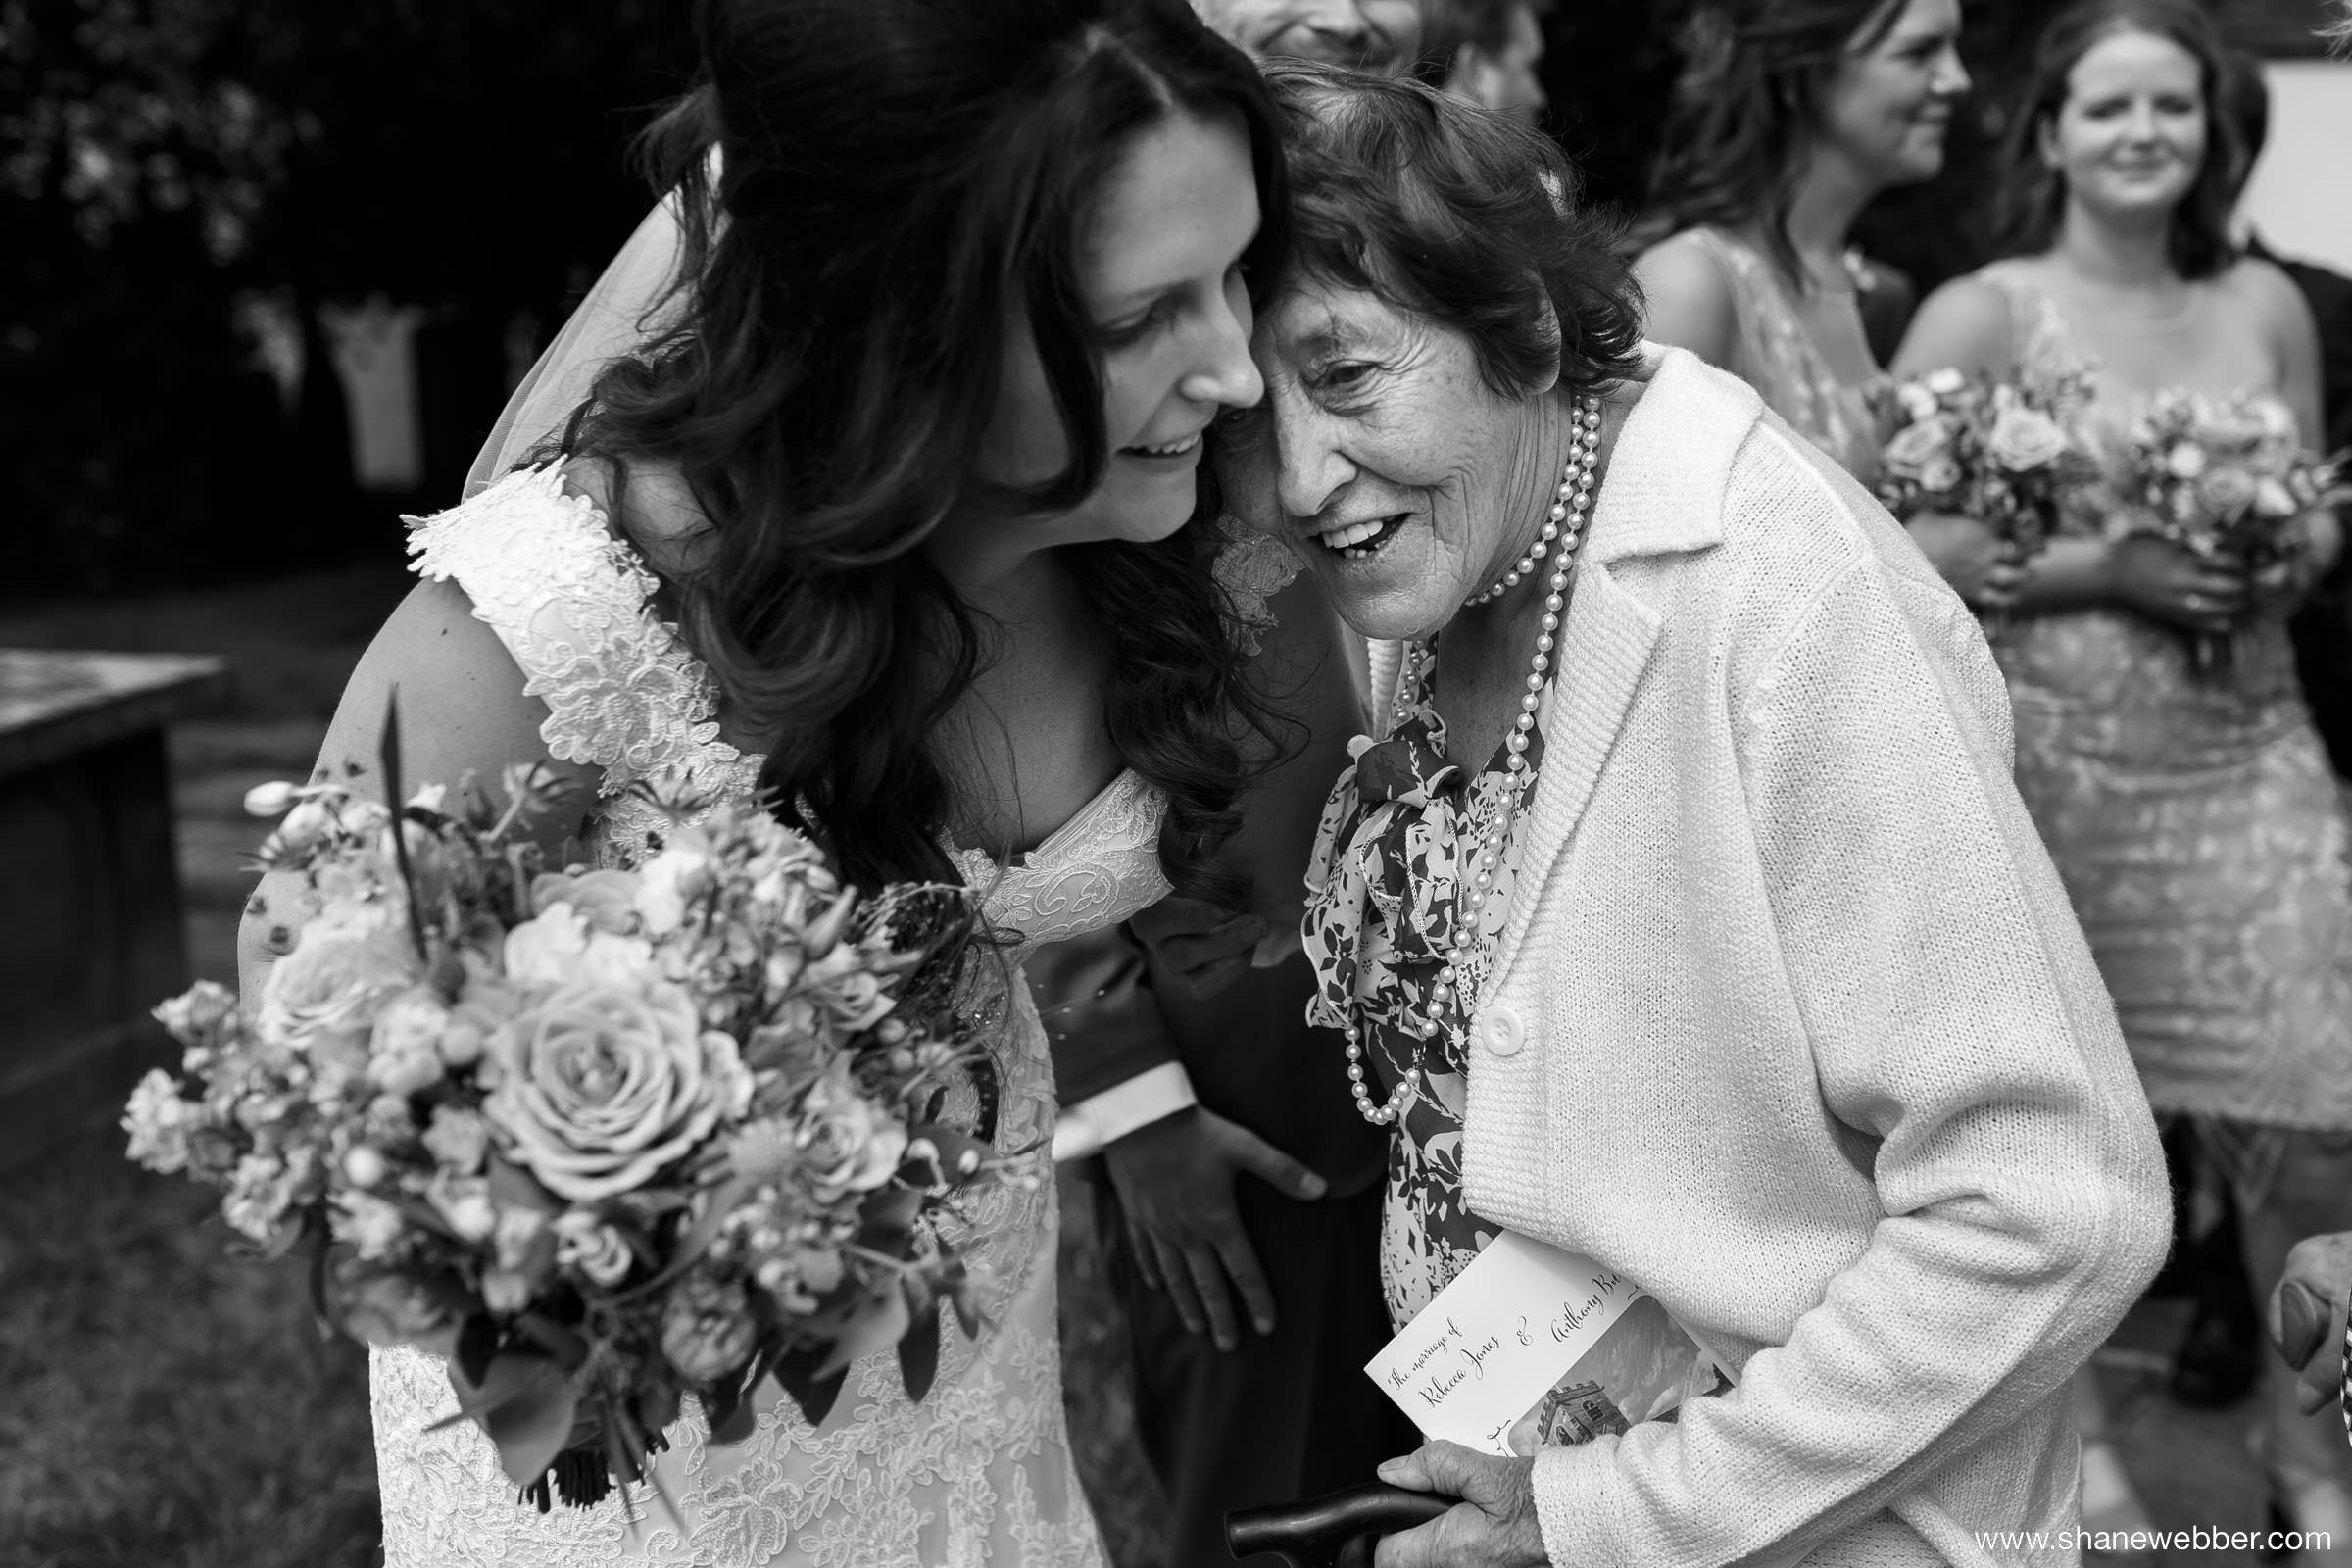 Emotional wedding photo of elderly guest